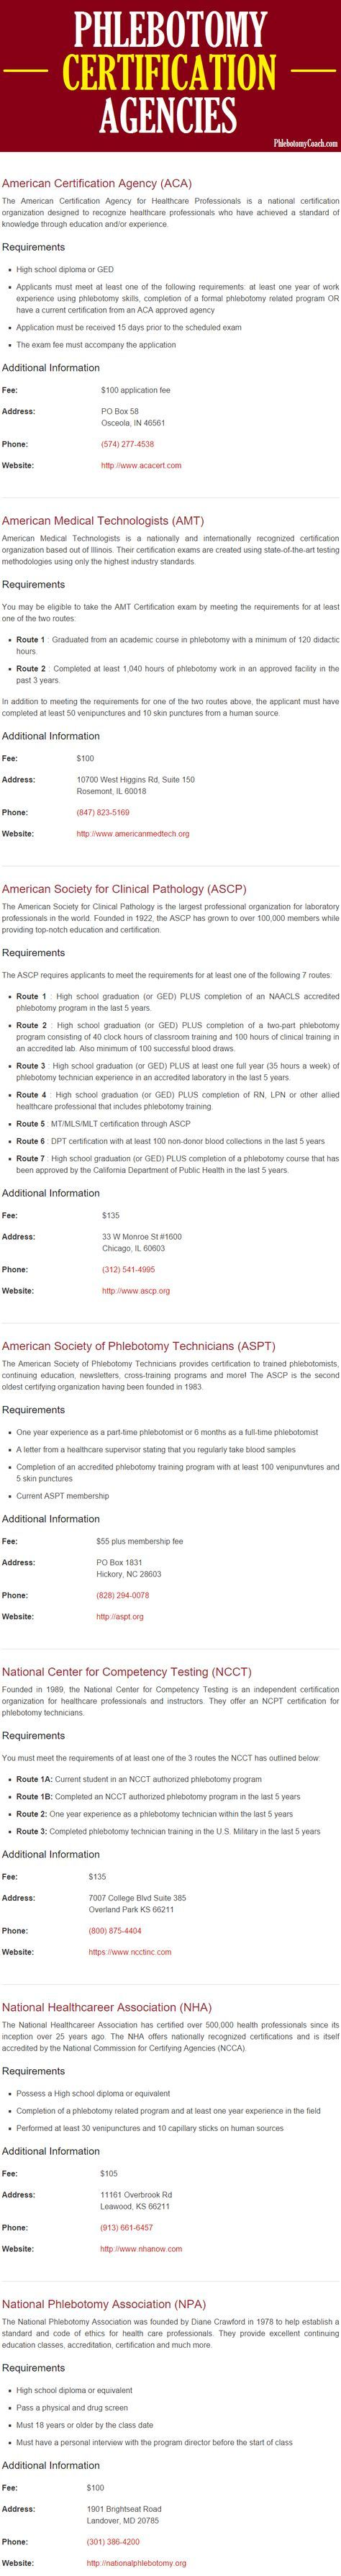 National phlebotomy certification programs that will jump-start your ...